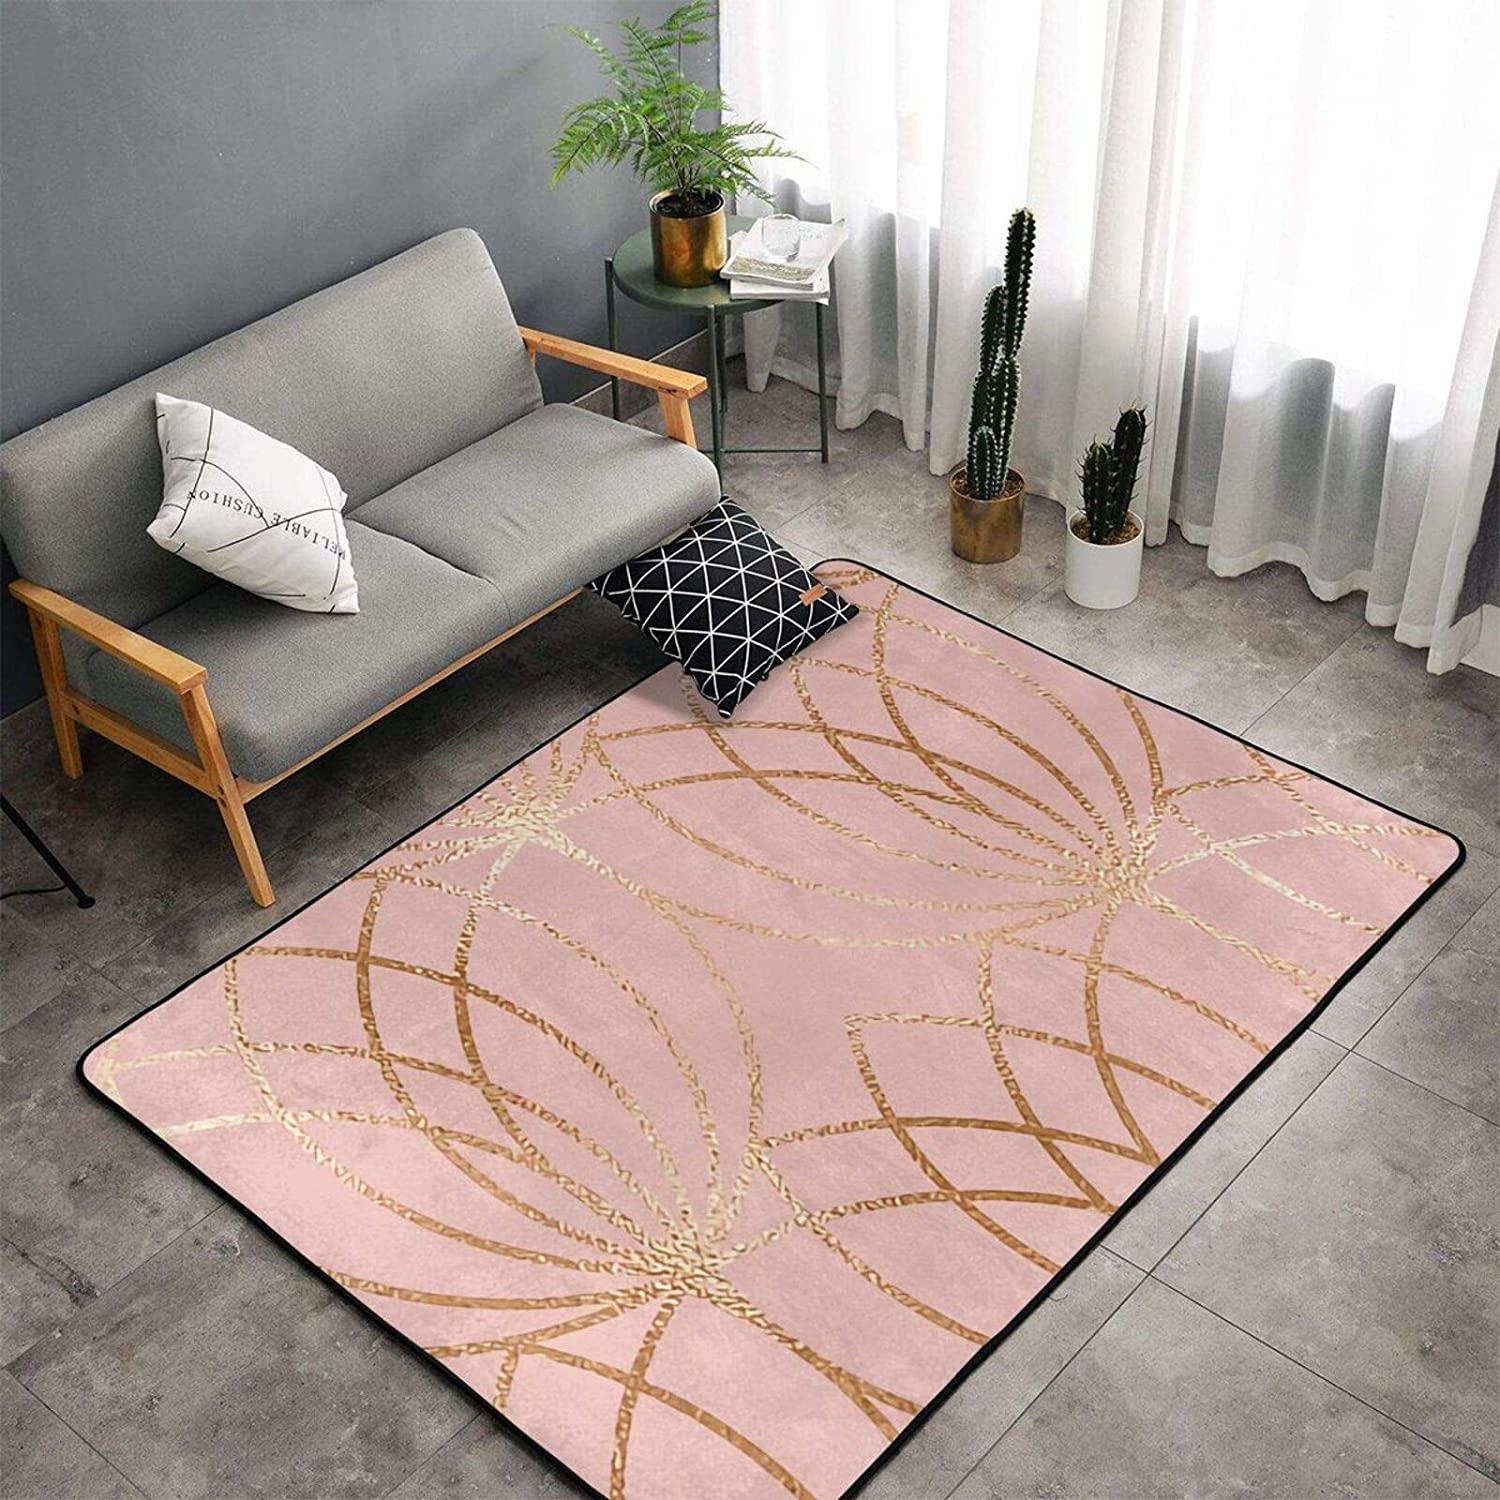 Luxury Modern Classic Thick Soft Area Rug for Bedroo Room Living Dallas Mall Max 80% OFF